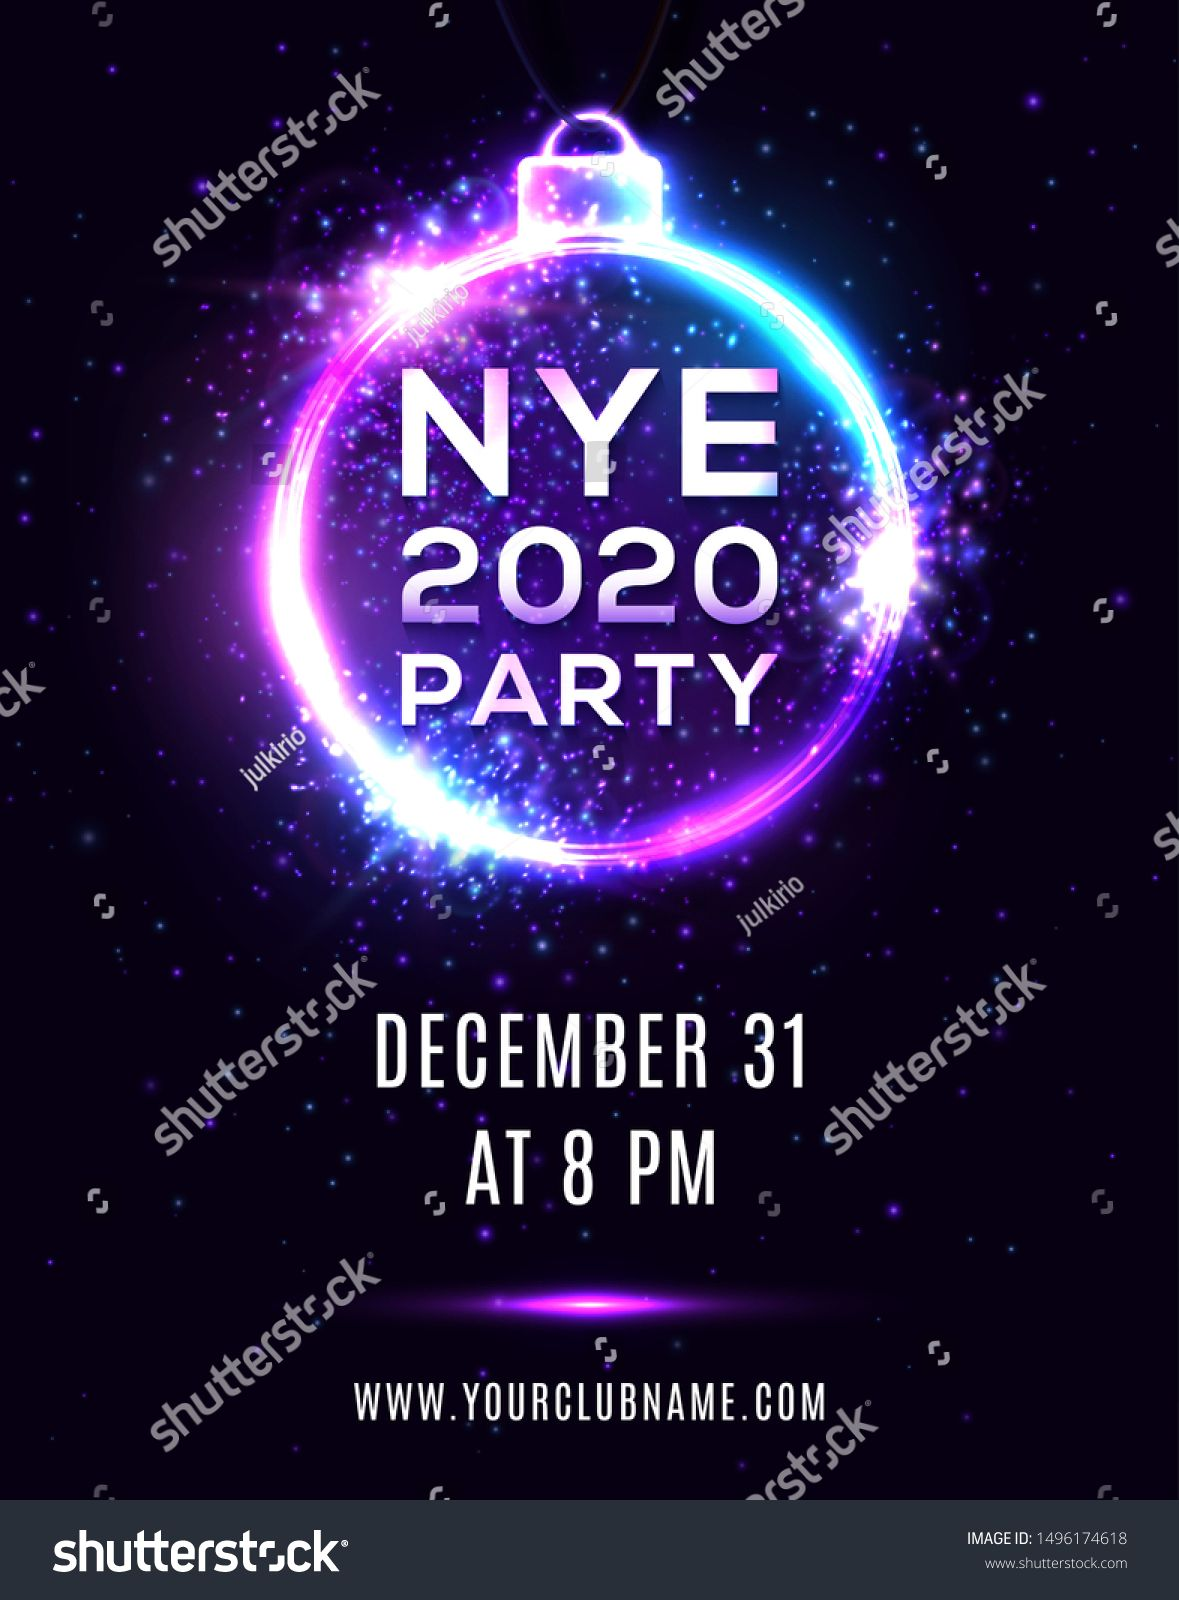 New Year Eve 2020 party poster on dark blue background